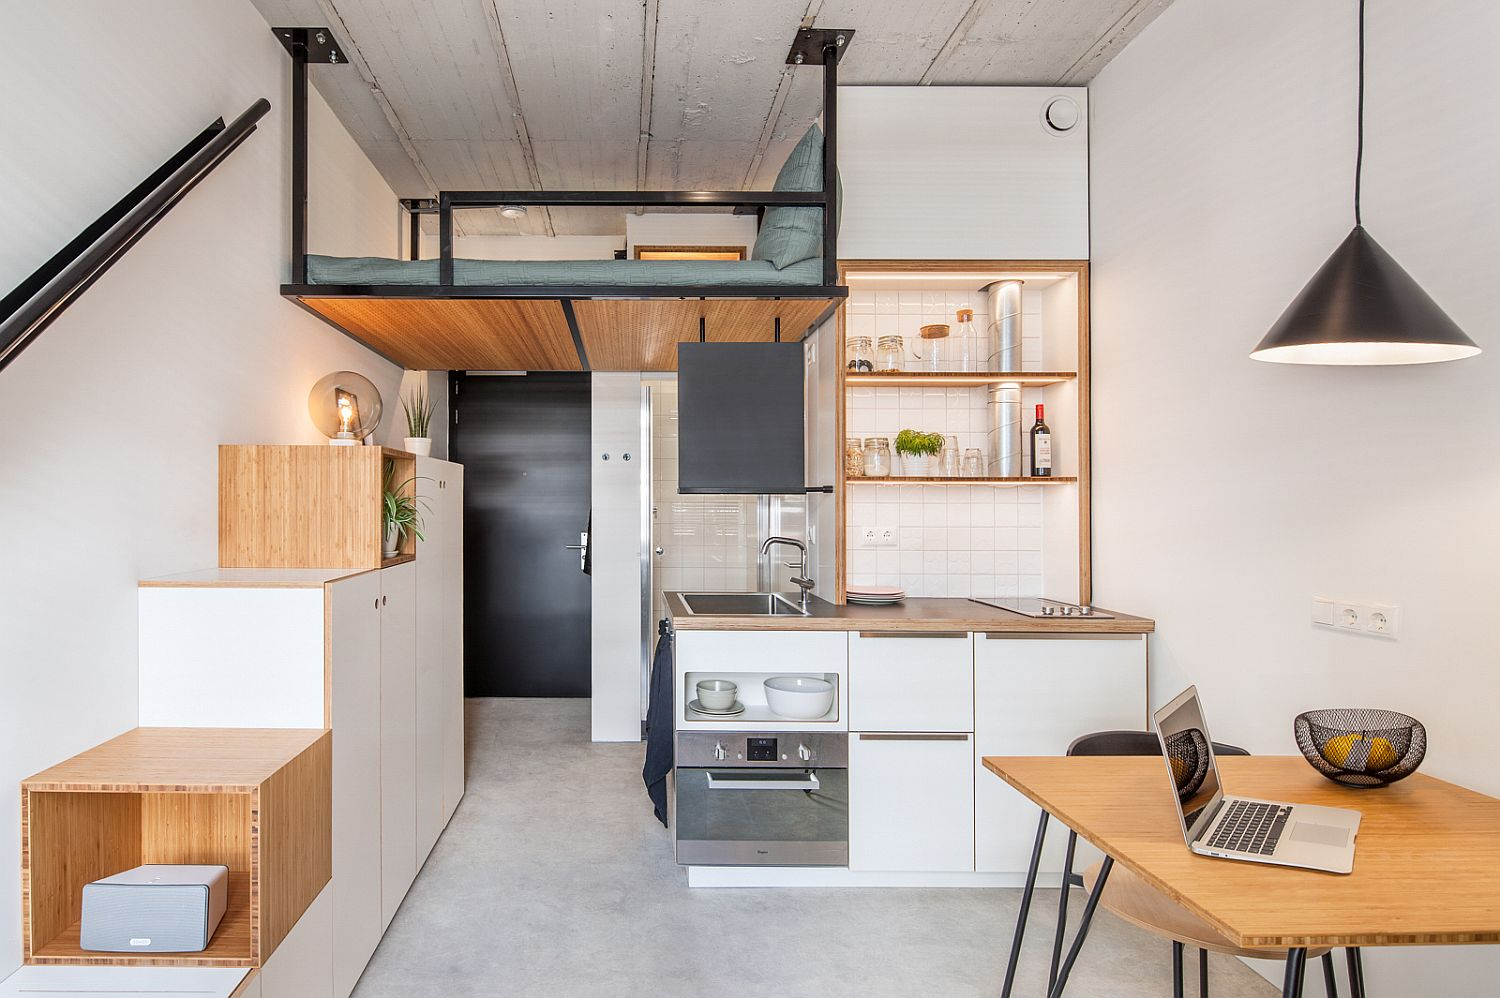 Tiny kitchen in wood and white for the ultra-small apartment